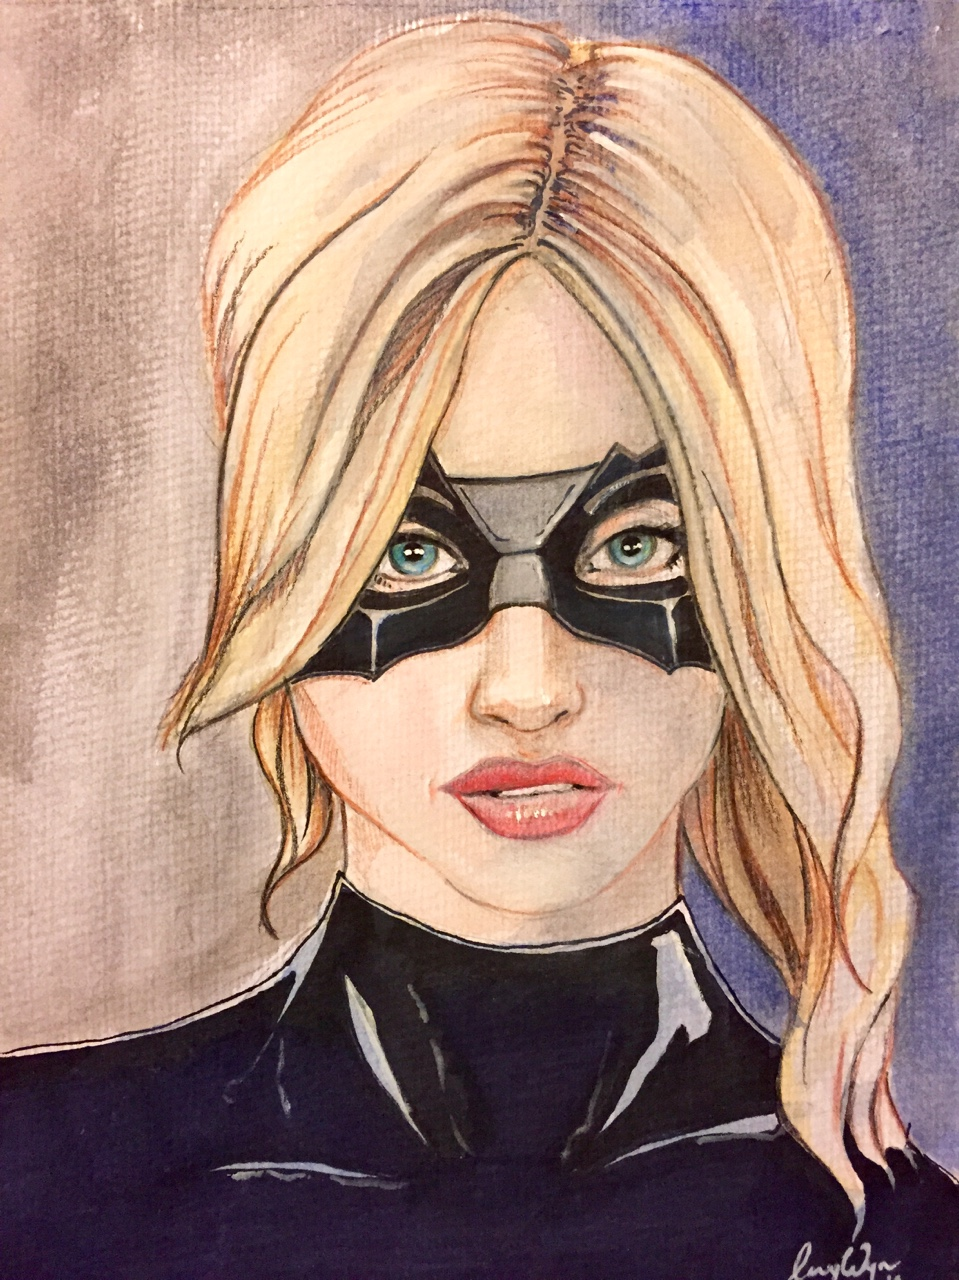 Pic I did for the OzComics Facebook page weekly challenge. Black Canary. Watercolour, pencil and marker. Hit the Follow Button